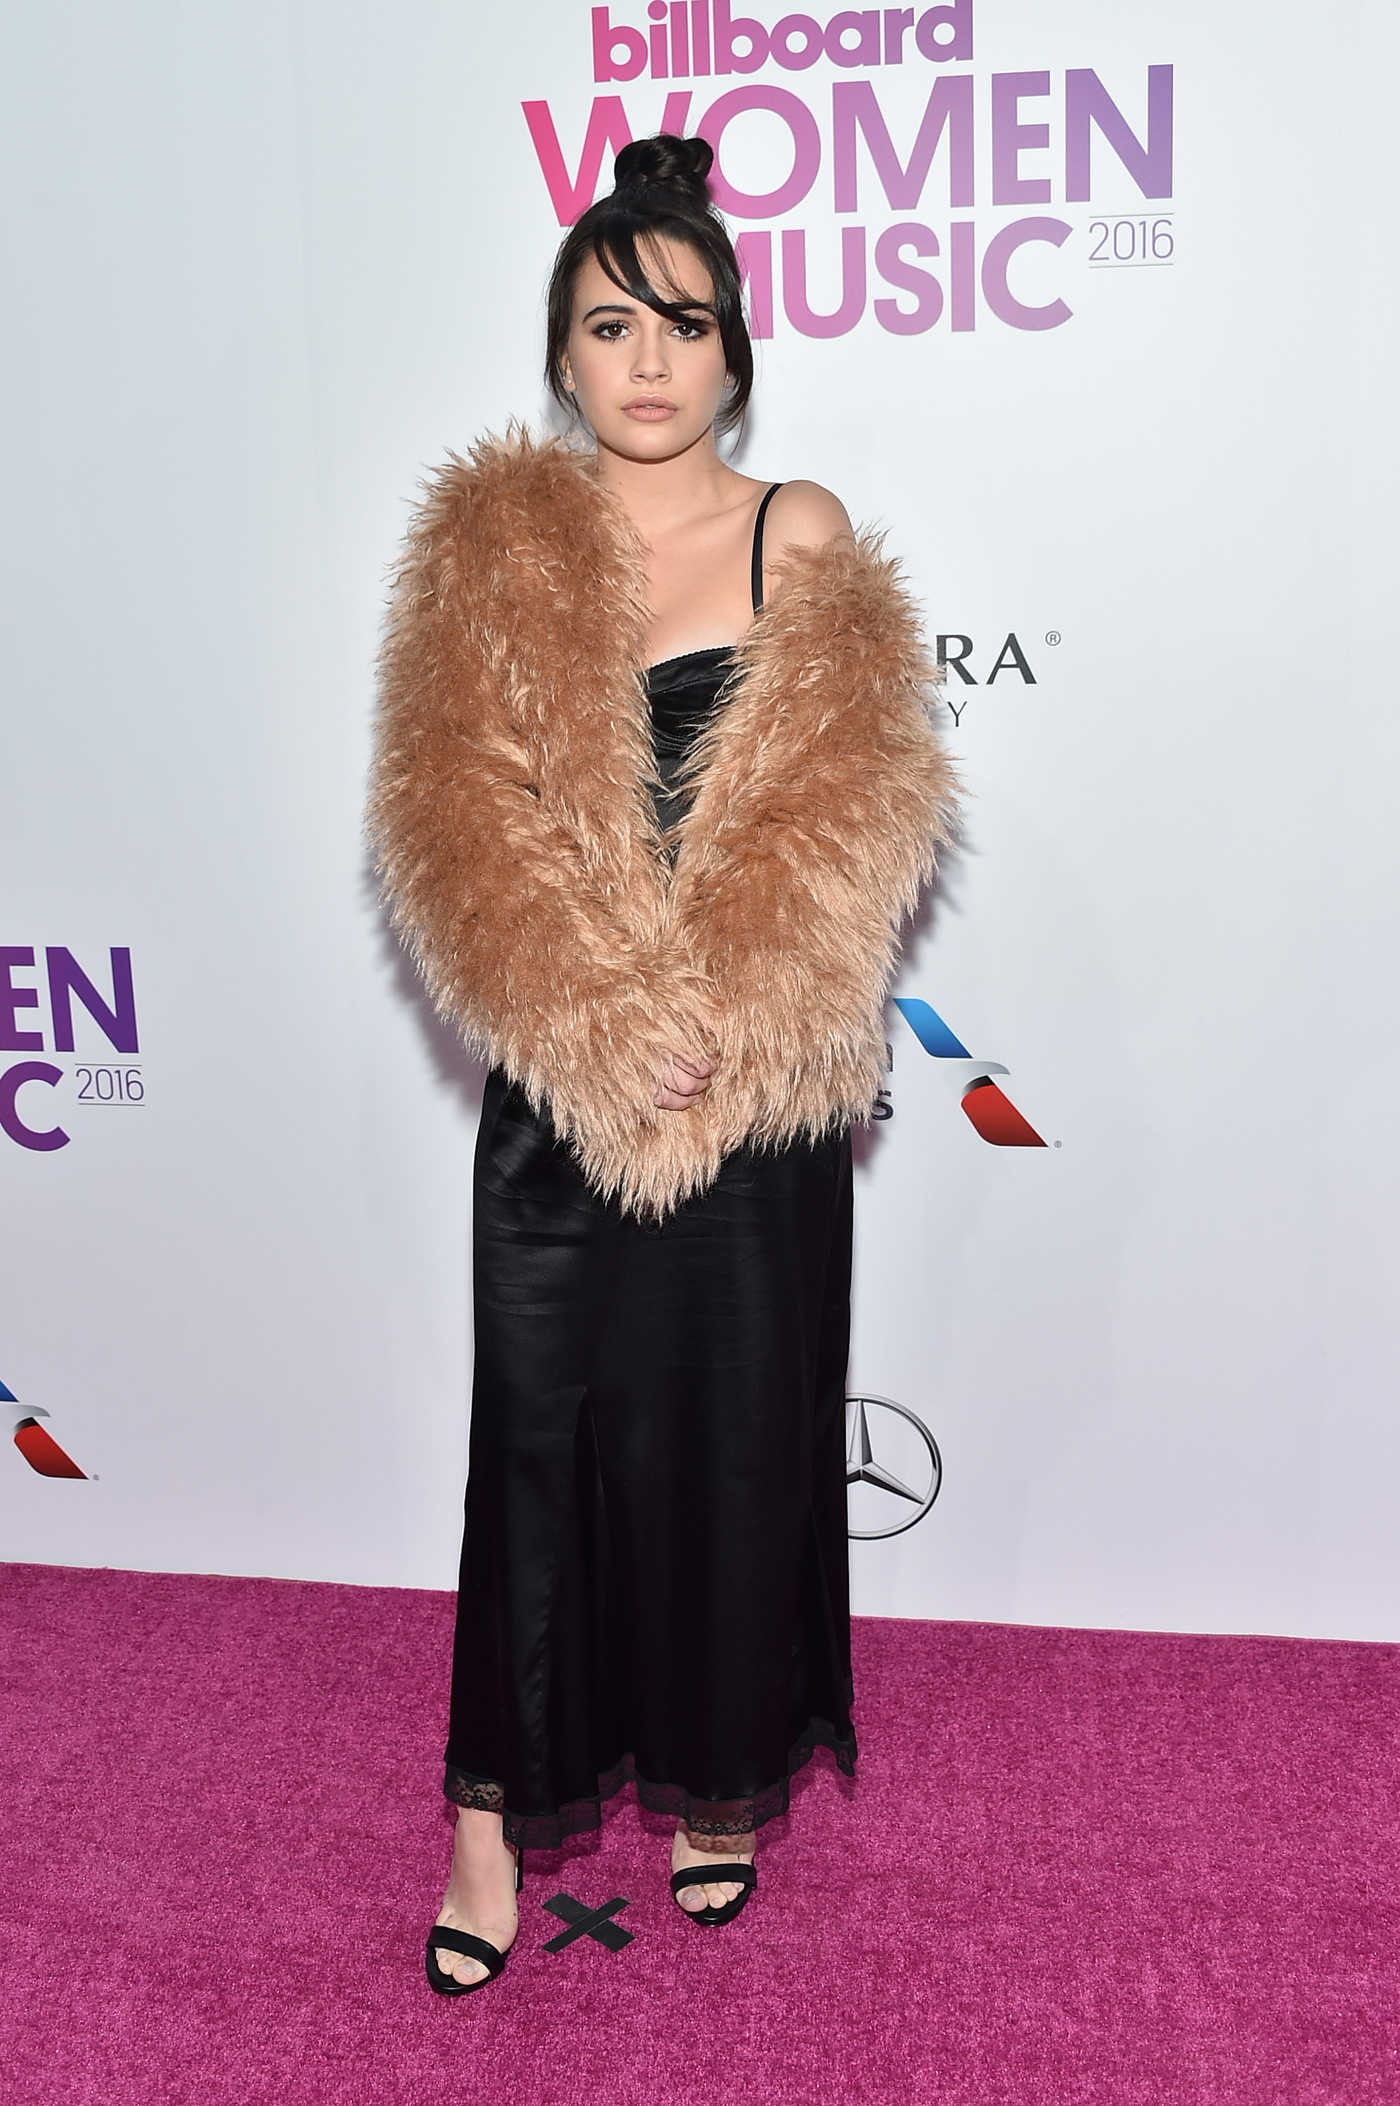 Bea Miller at the Billboard Women in Music 2016 Event at Pier 36 in NYC 12/09/2016